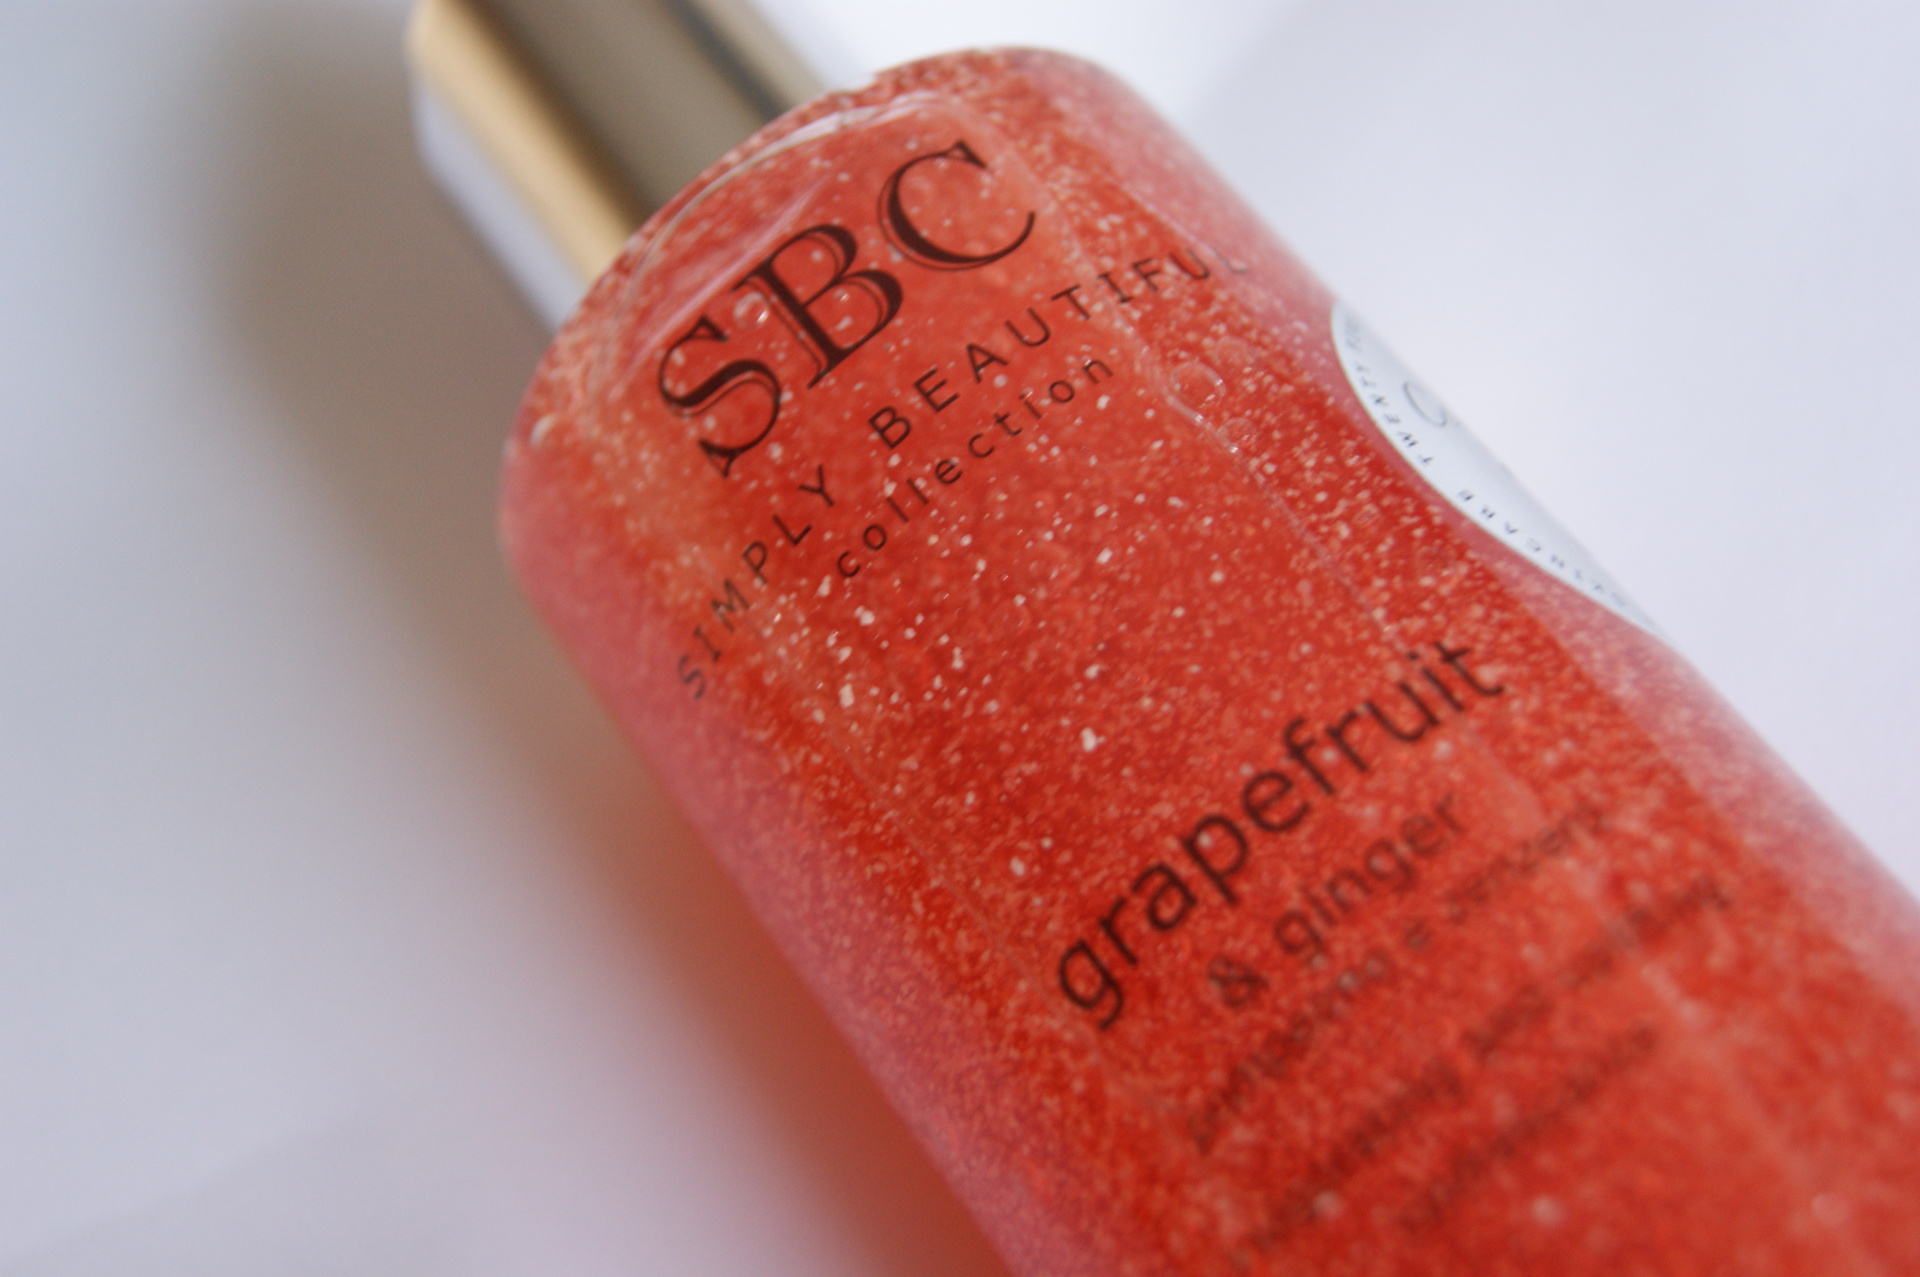 SBC Gels Grapefruit & Ginger exfoliating body wash